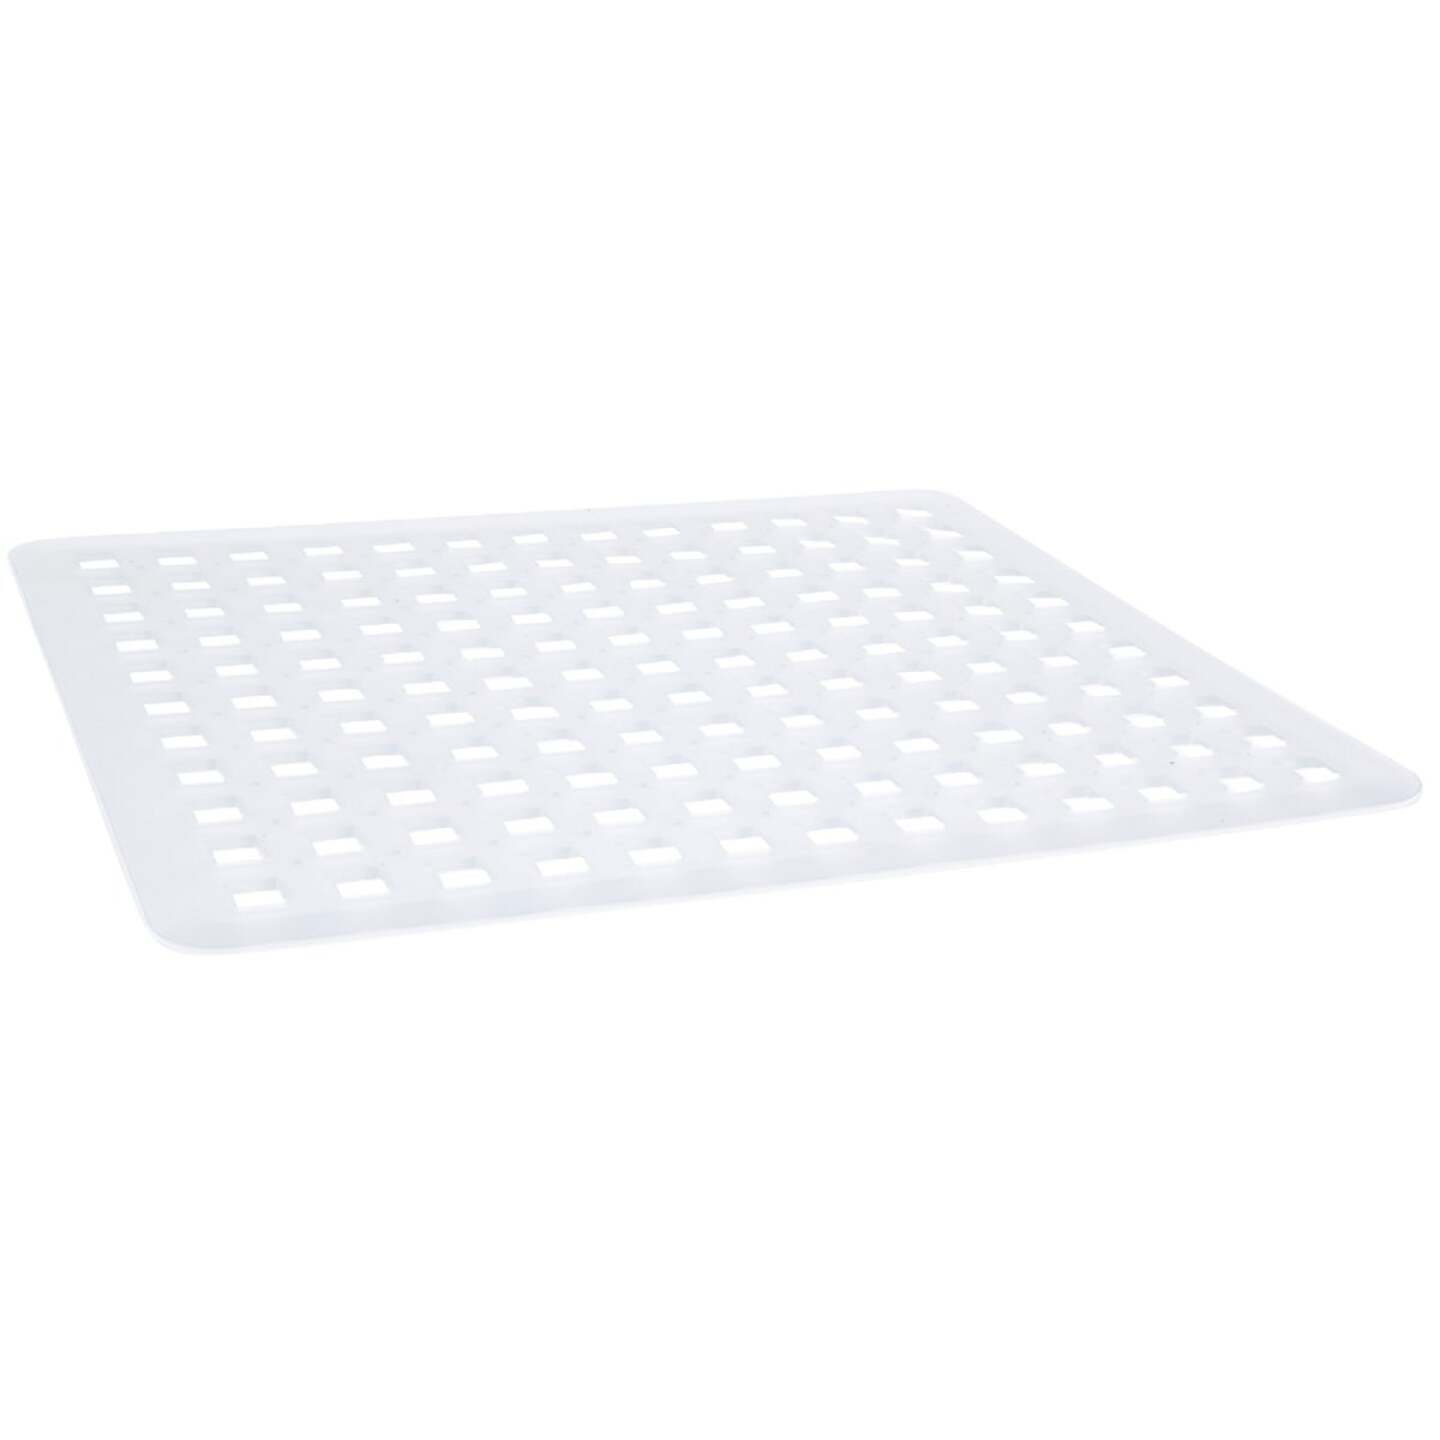 InterDesign Sinkworks 11 In. x 12.5 In. Euro Sink Mat Image 1